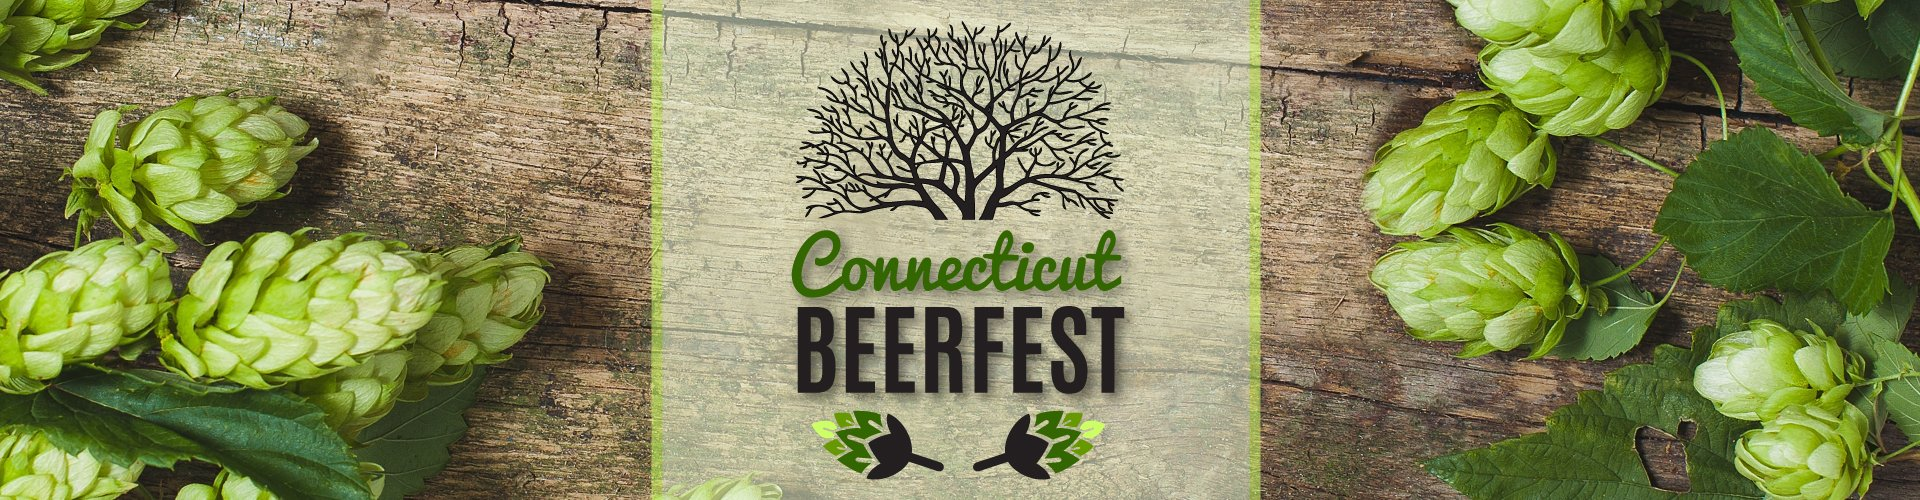 Connecticut Beerfest January 5, 2019 at CT Convention Center in Hartford - produced by Jenks Productions